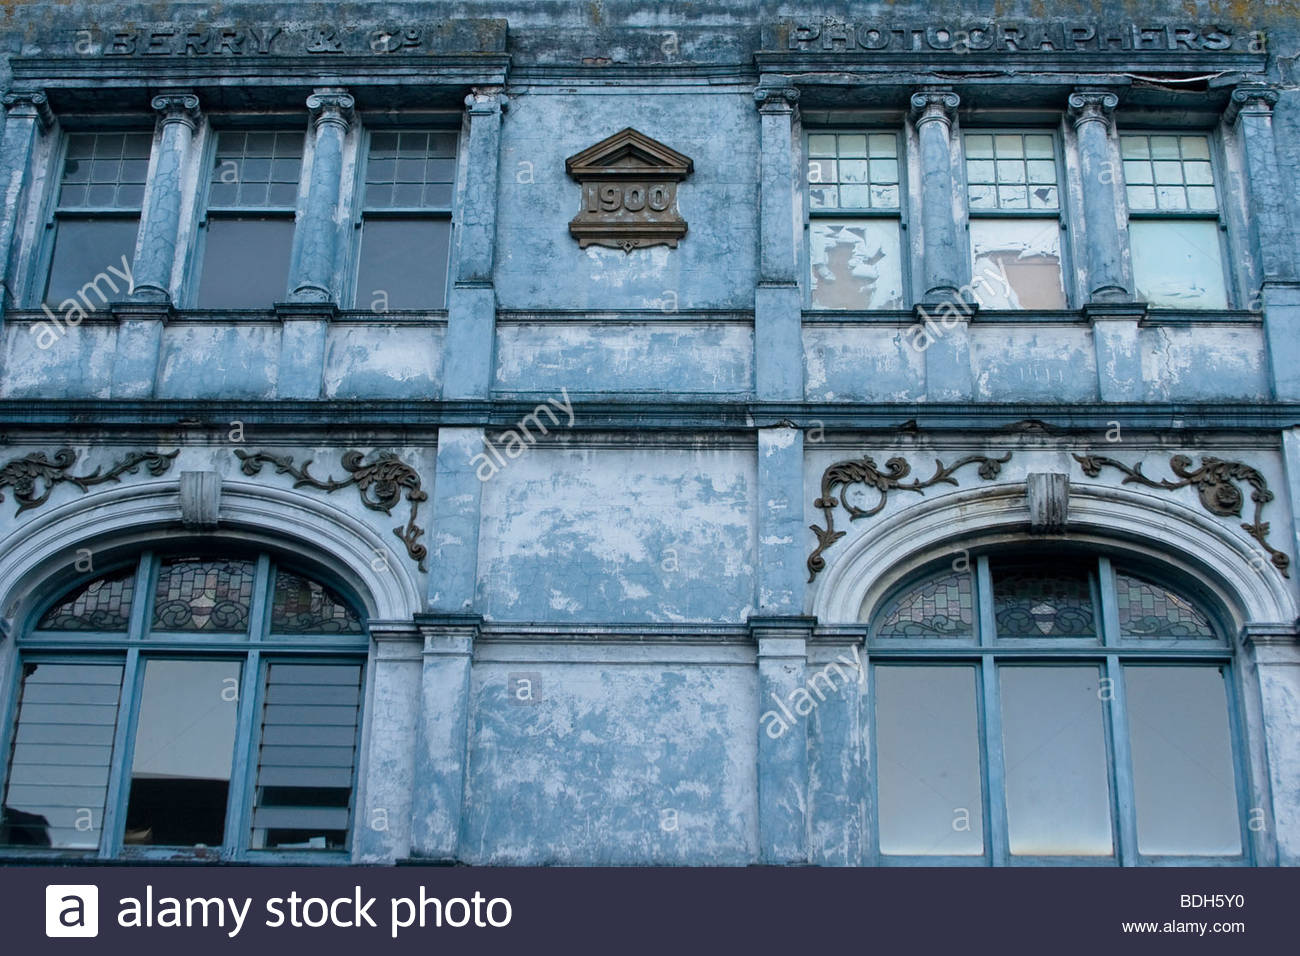 stock photo wellington new zealand cool old building architecture blue